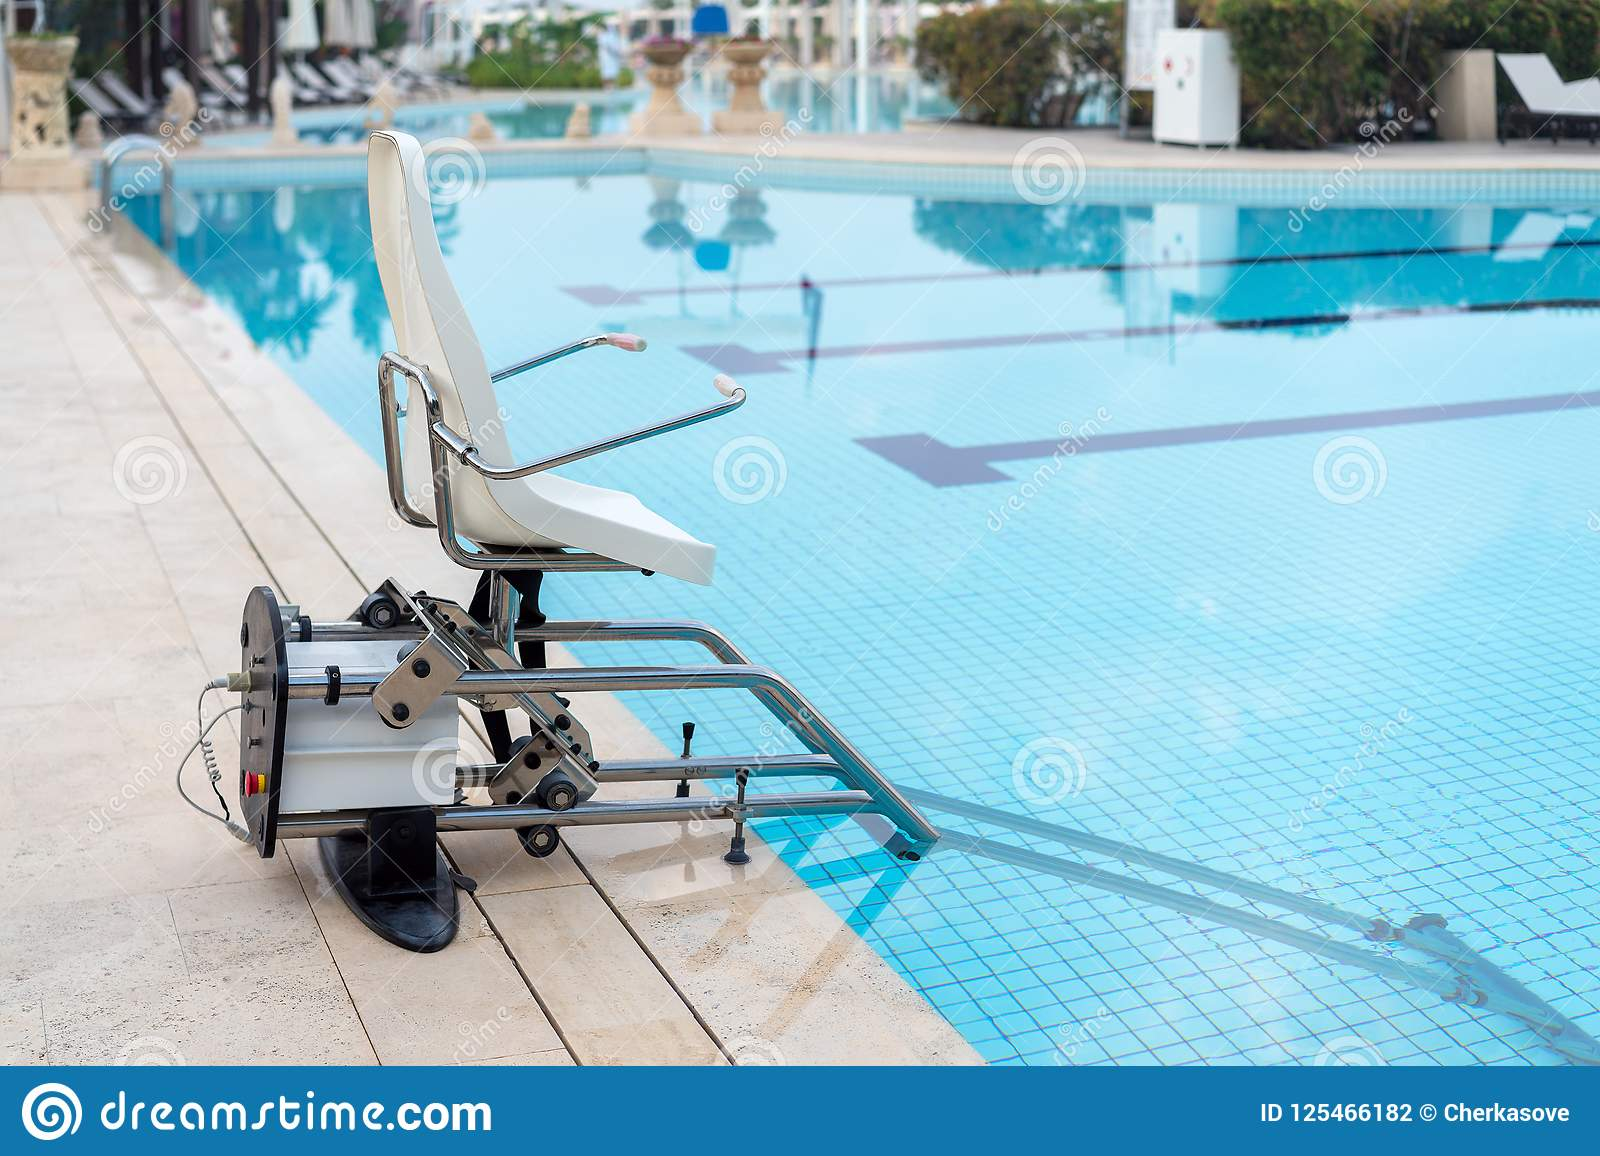 Swimming Pool Lifts For Disabled People Access To The Pool ...